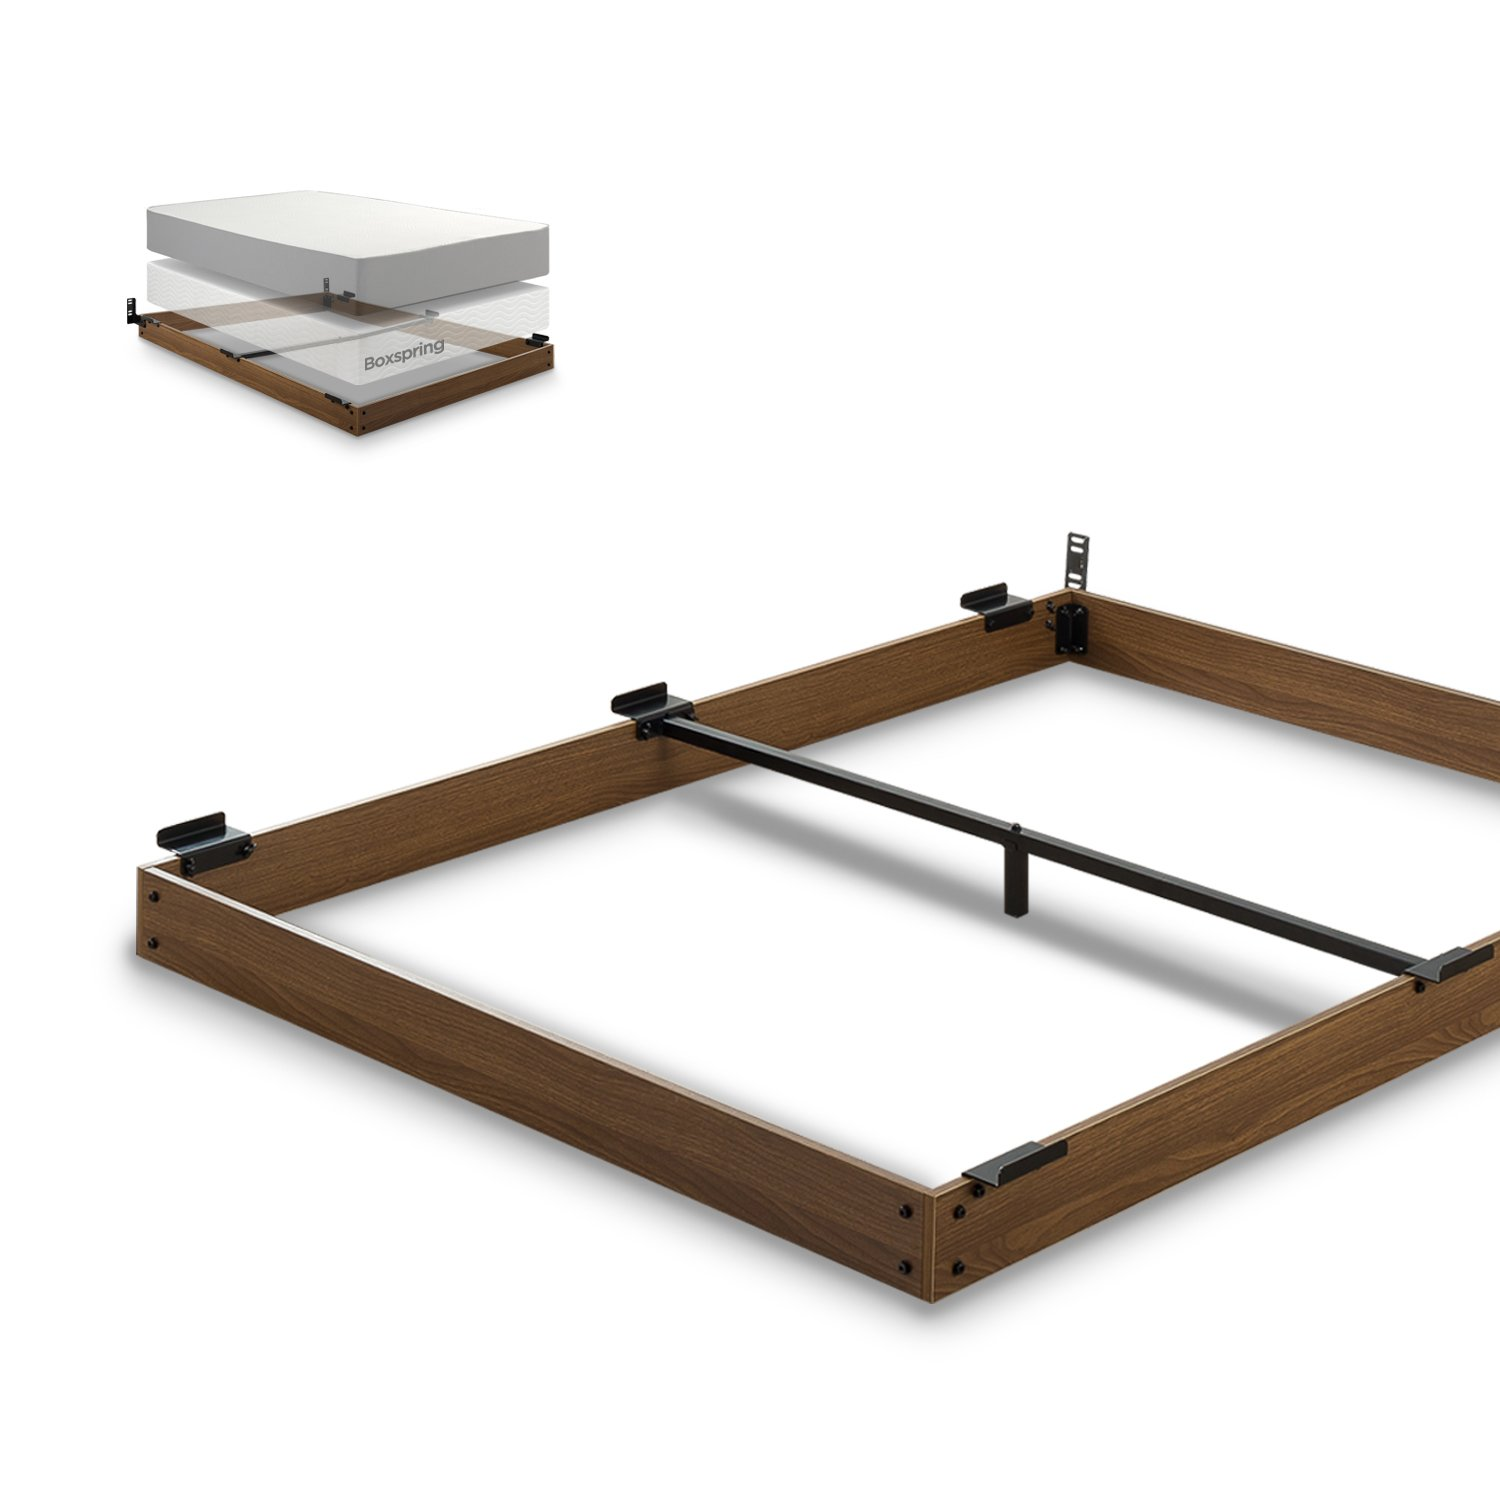 Amazon.com: Zinus 5 Inch Wood Bed Frame for Box Spring & Mattress ...